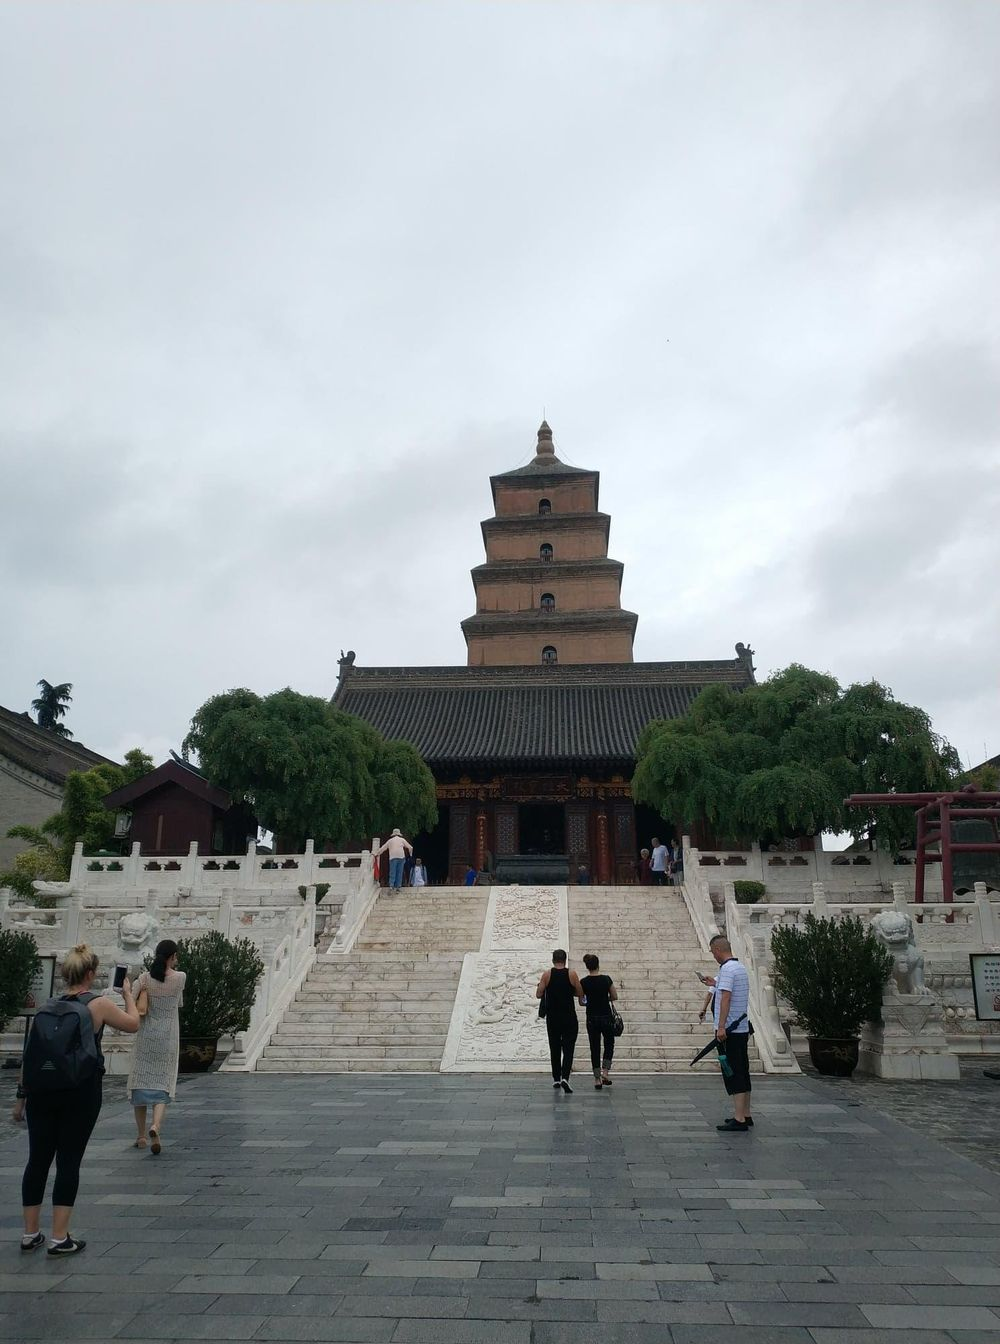 Wild Goose Pagoda - image 2 - student project